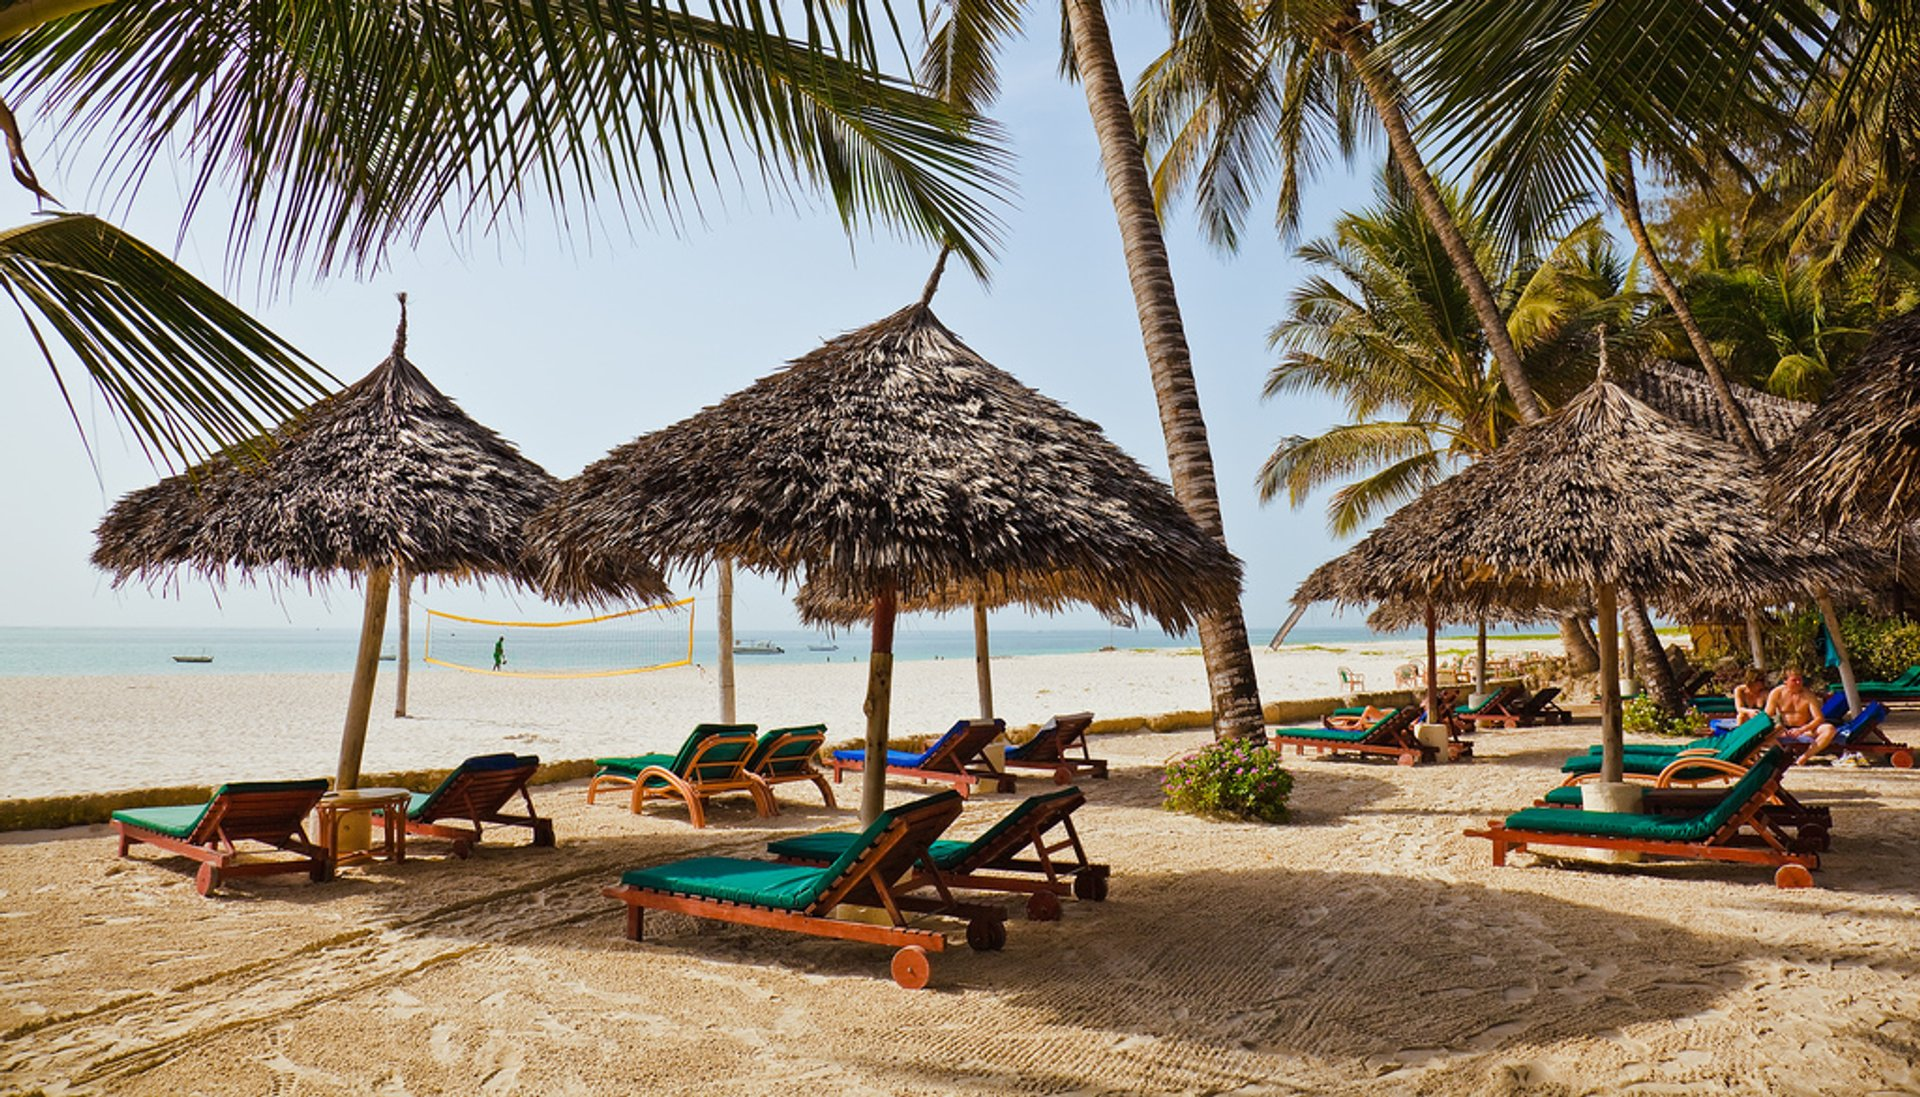 Shaded loungers under the palm trees, facing the Indian Ocean. Pinewood Beach Resort, Mombasa. 2019